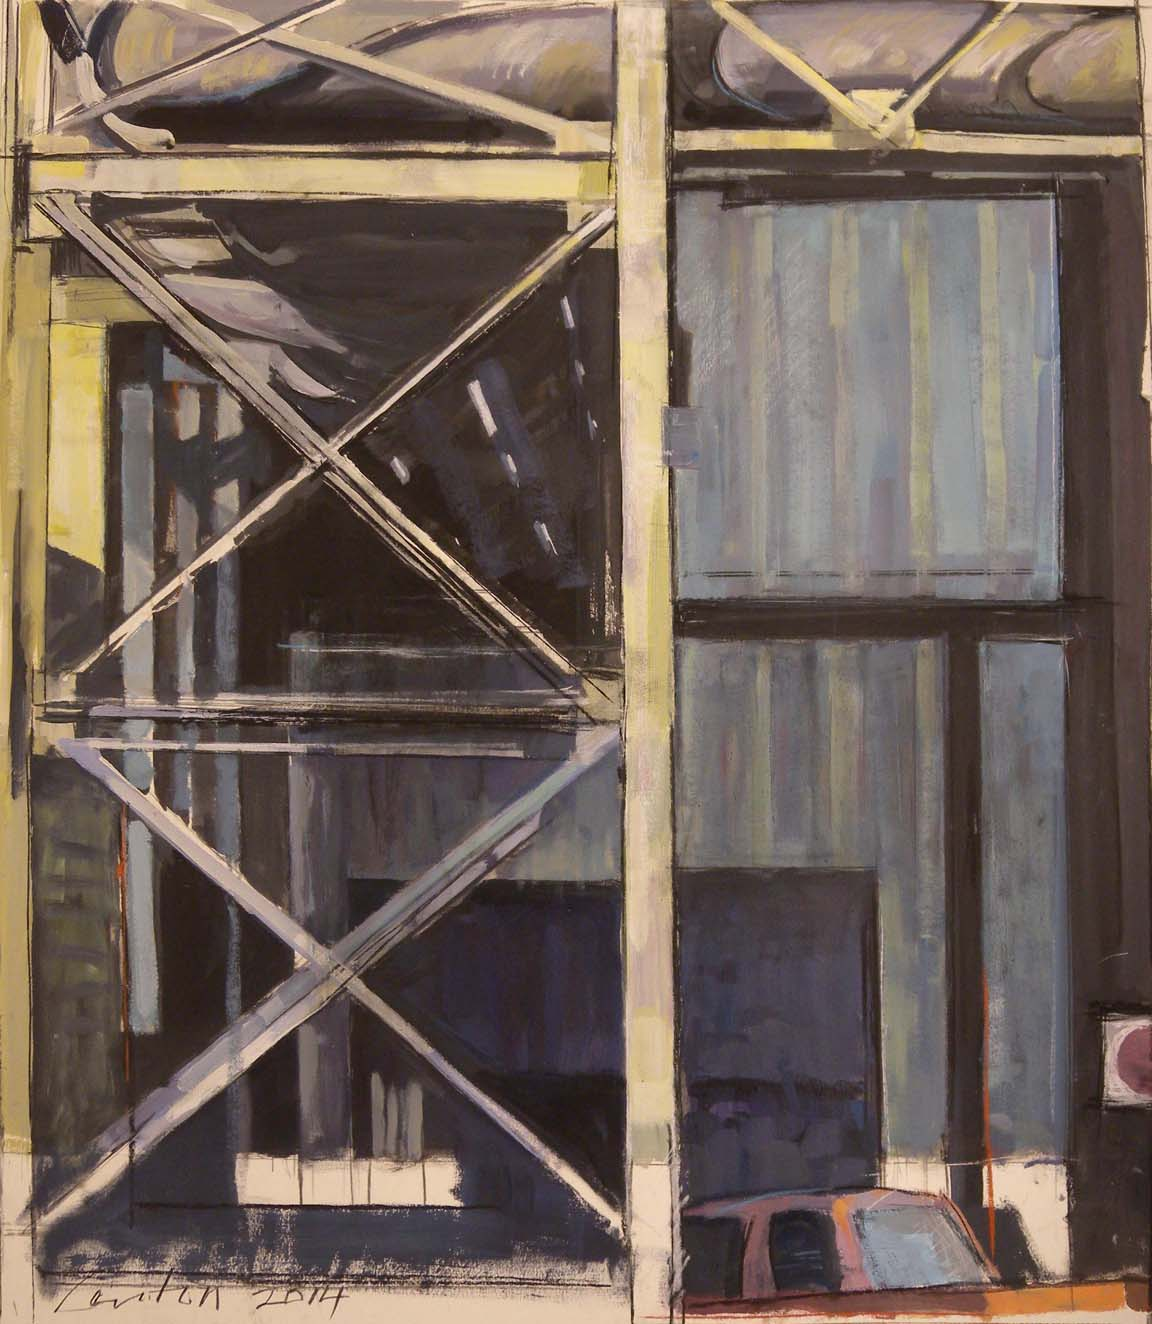 """Girder & Truck, acrylic, gouache & charcoal on paper, 31"""" x 26 3/4"""", 2014, Private Collection"""